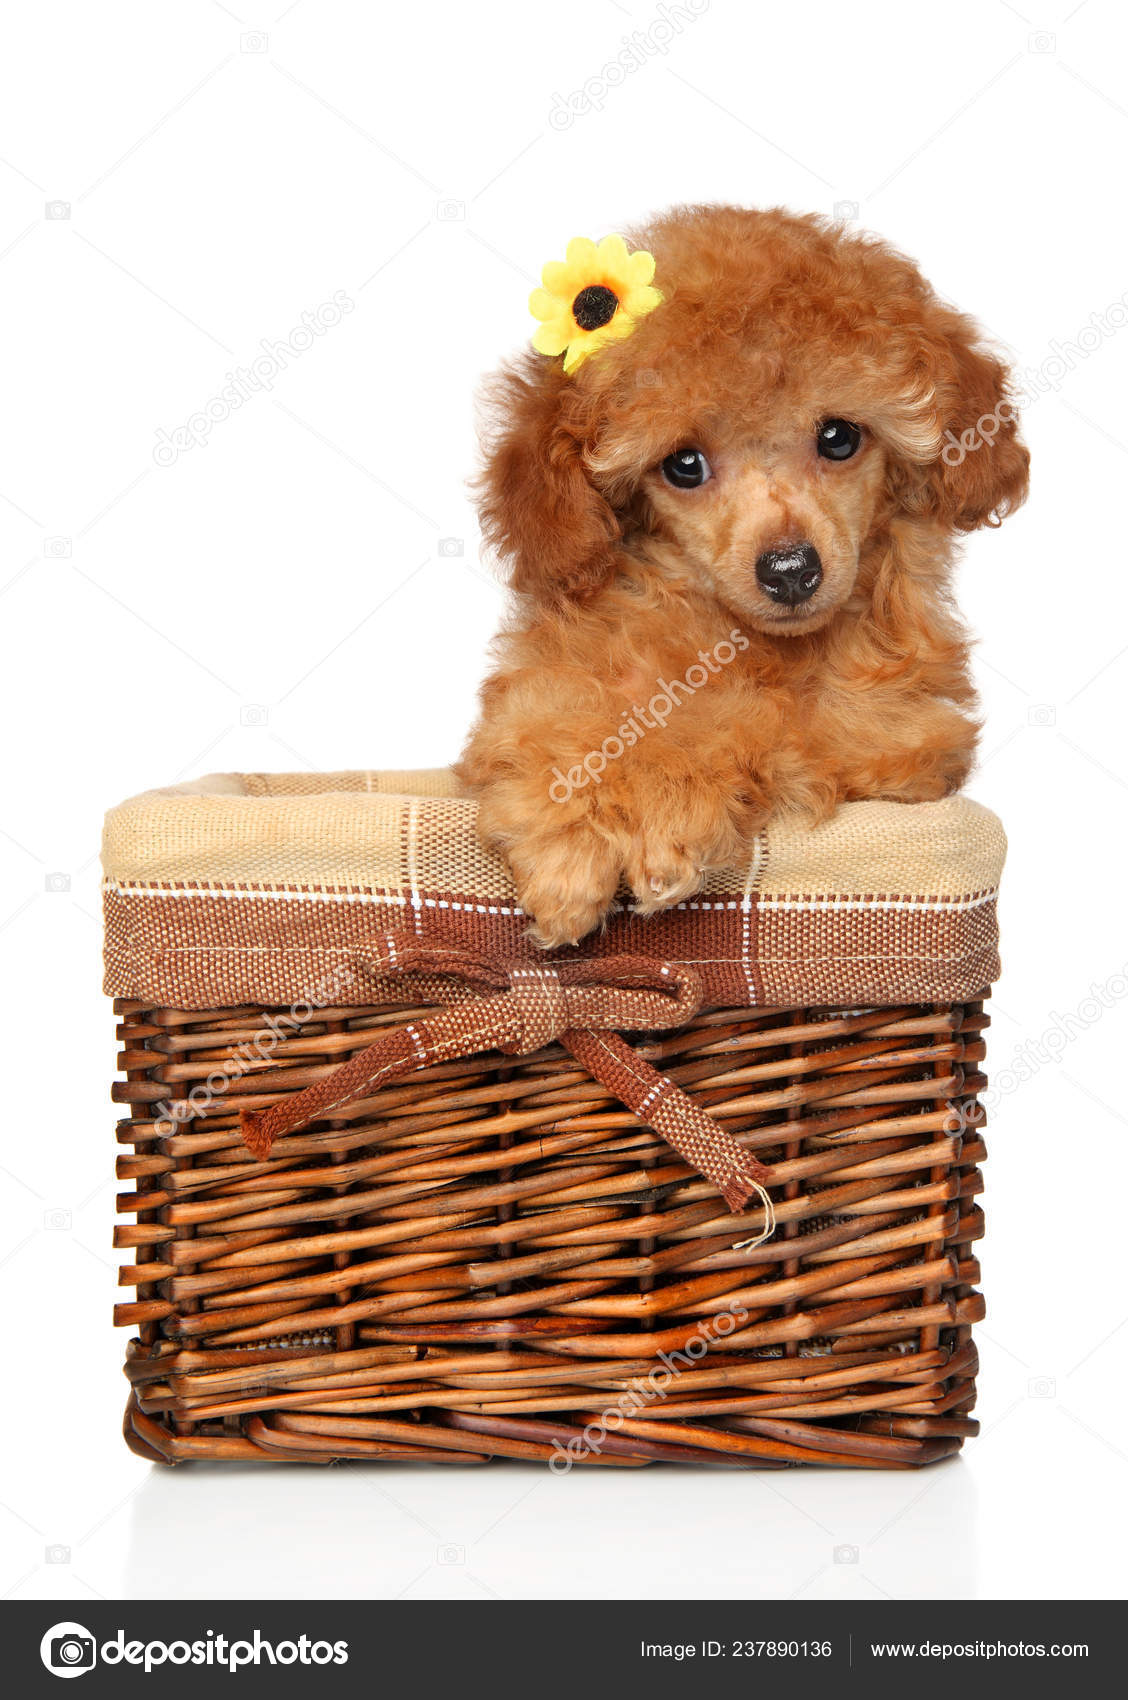 Baby Red Toy Poodle Red Toy Poodle Puppy Posing Wicker Basket Baby Animal Theme Stock Photo C Fotojagodka 237890136